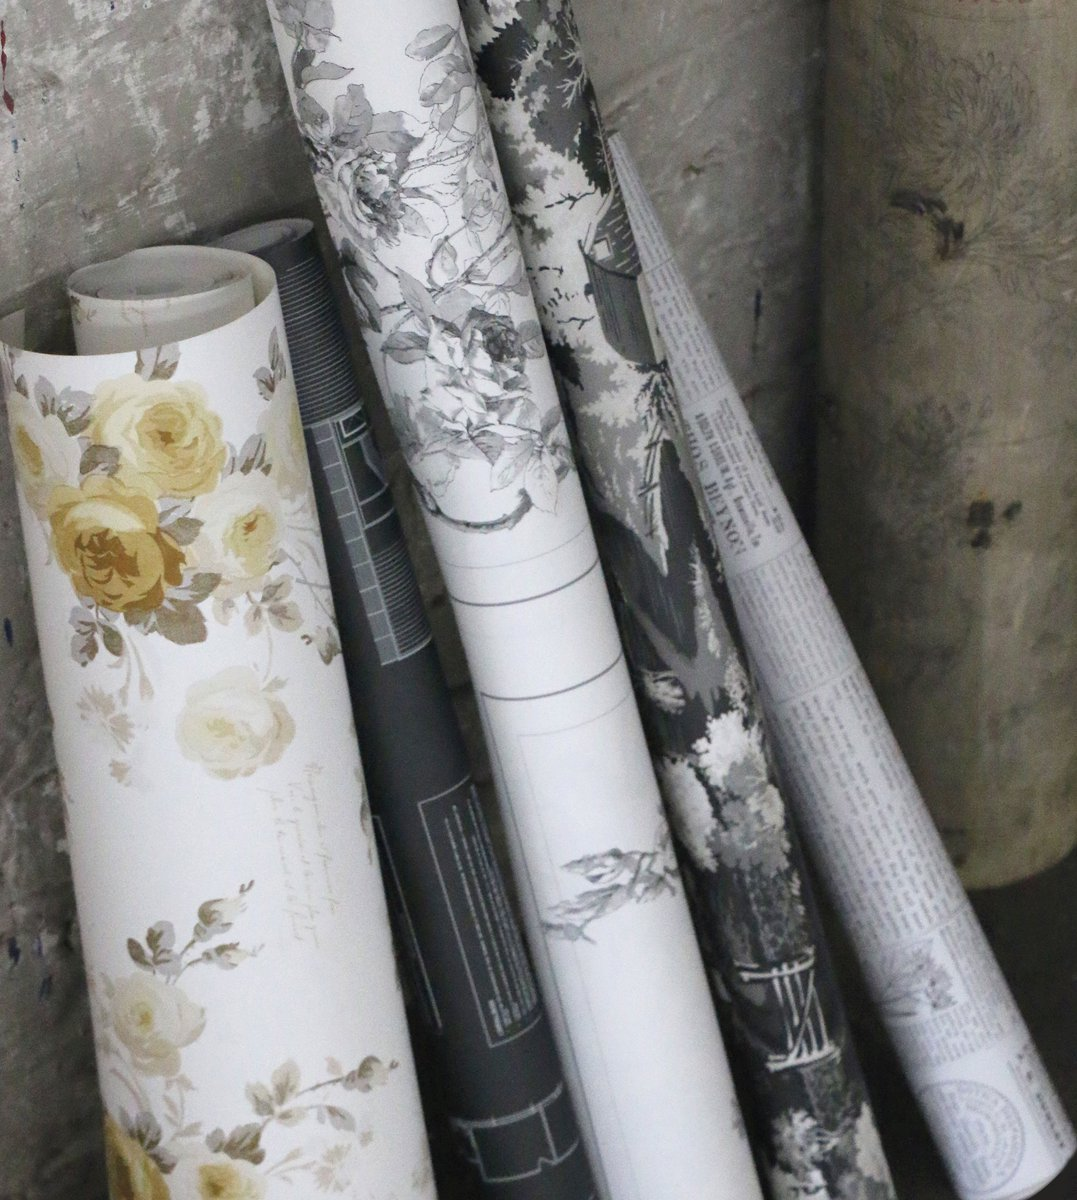 High Wallpaper Reviews Steve S Blinds Wallpaper Heights Mi Blinds On Starting At Just Persingle Blinds On Starting At Just Steves Blinds houzz-03 Steves Blinds And Wallpaper